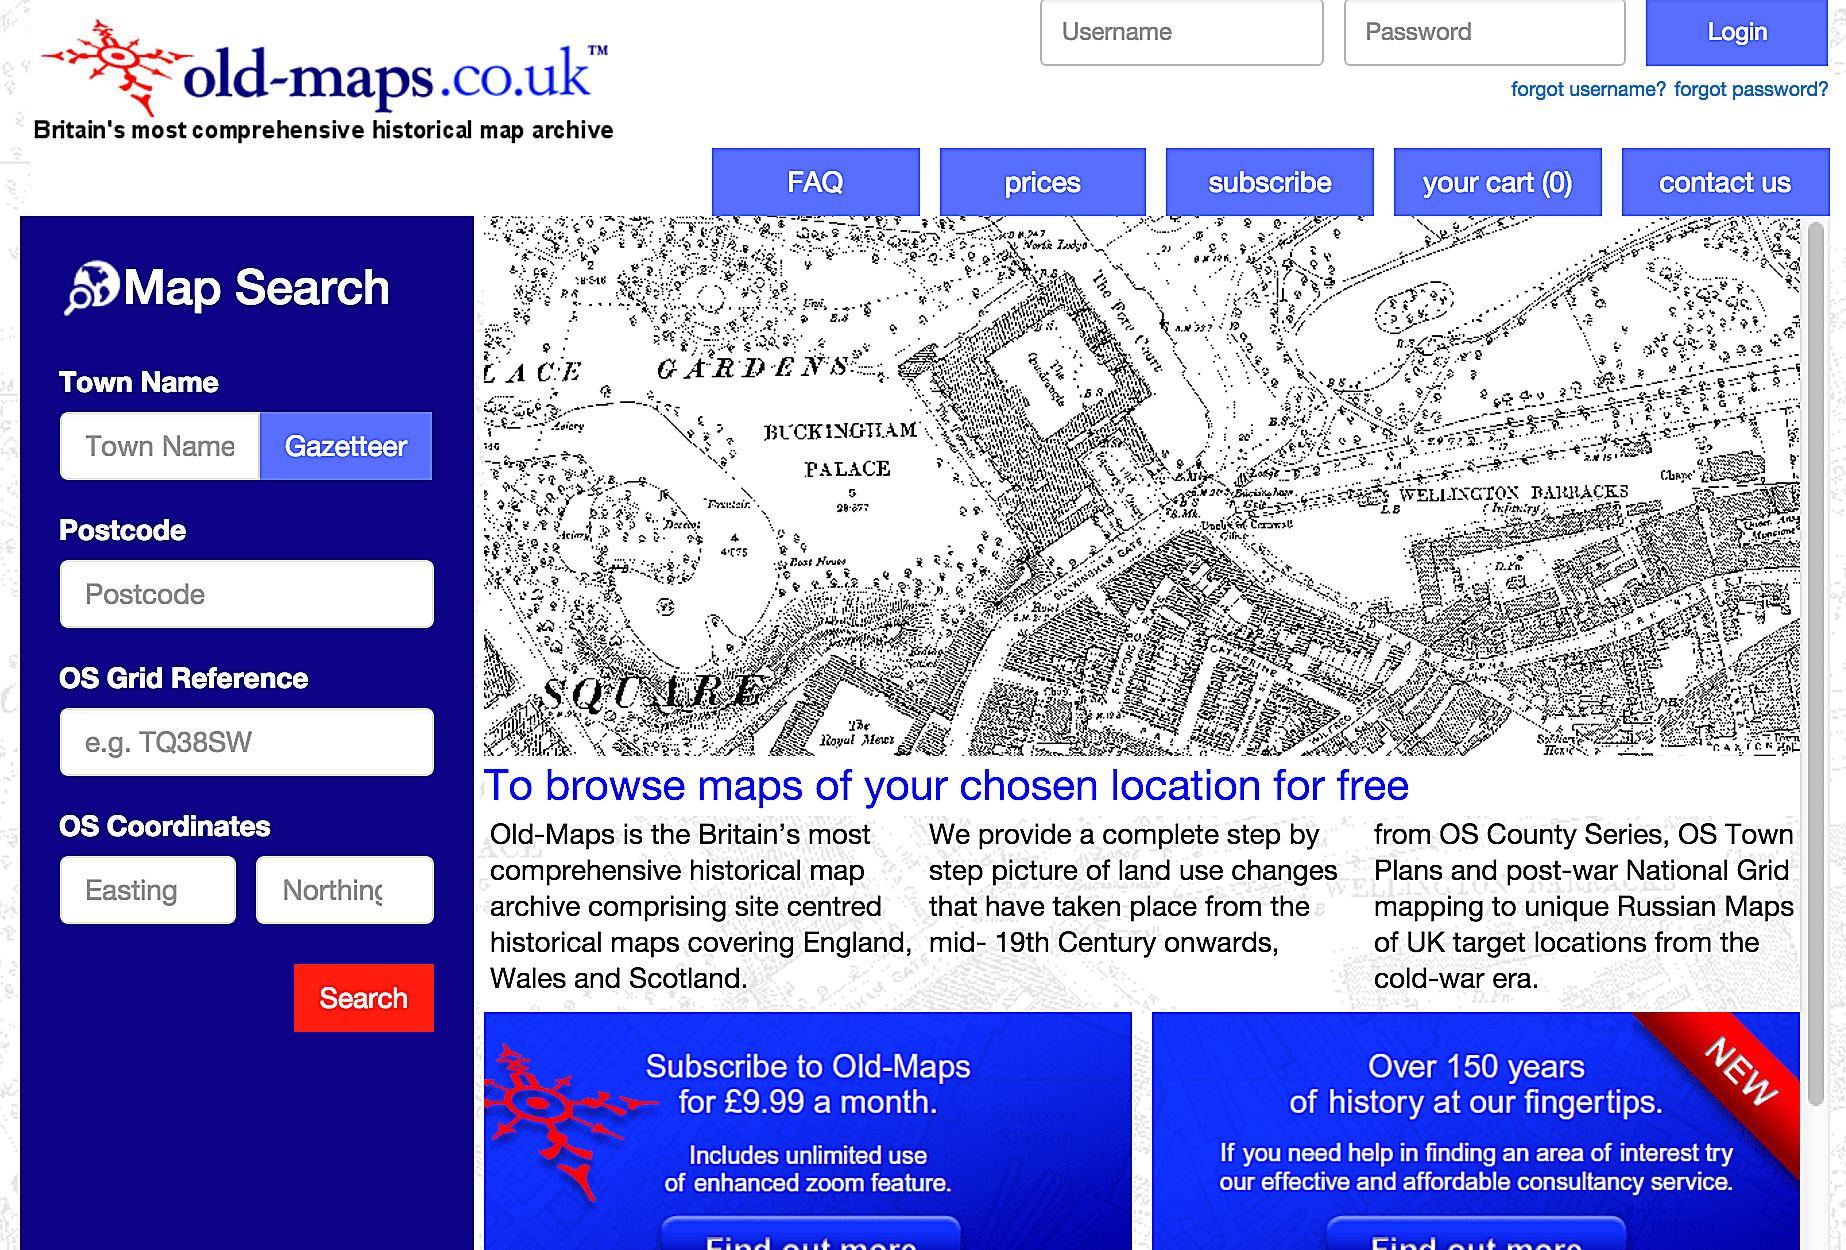 Old-Maps.co.uk contains over one million historical maps for mainland Britain from Ordnance Survey maps c. 1843 to c. 1996.